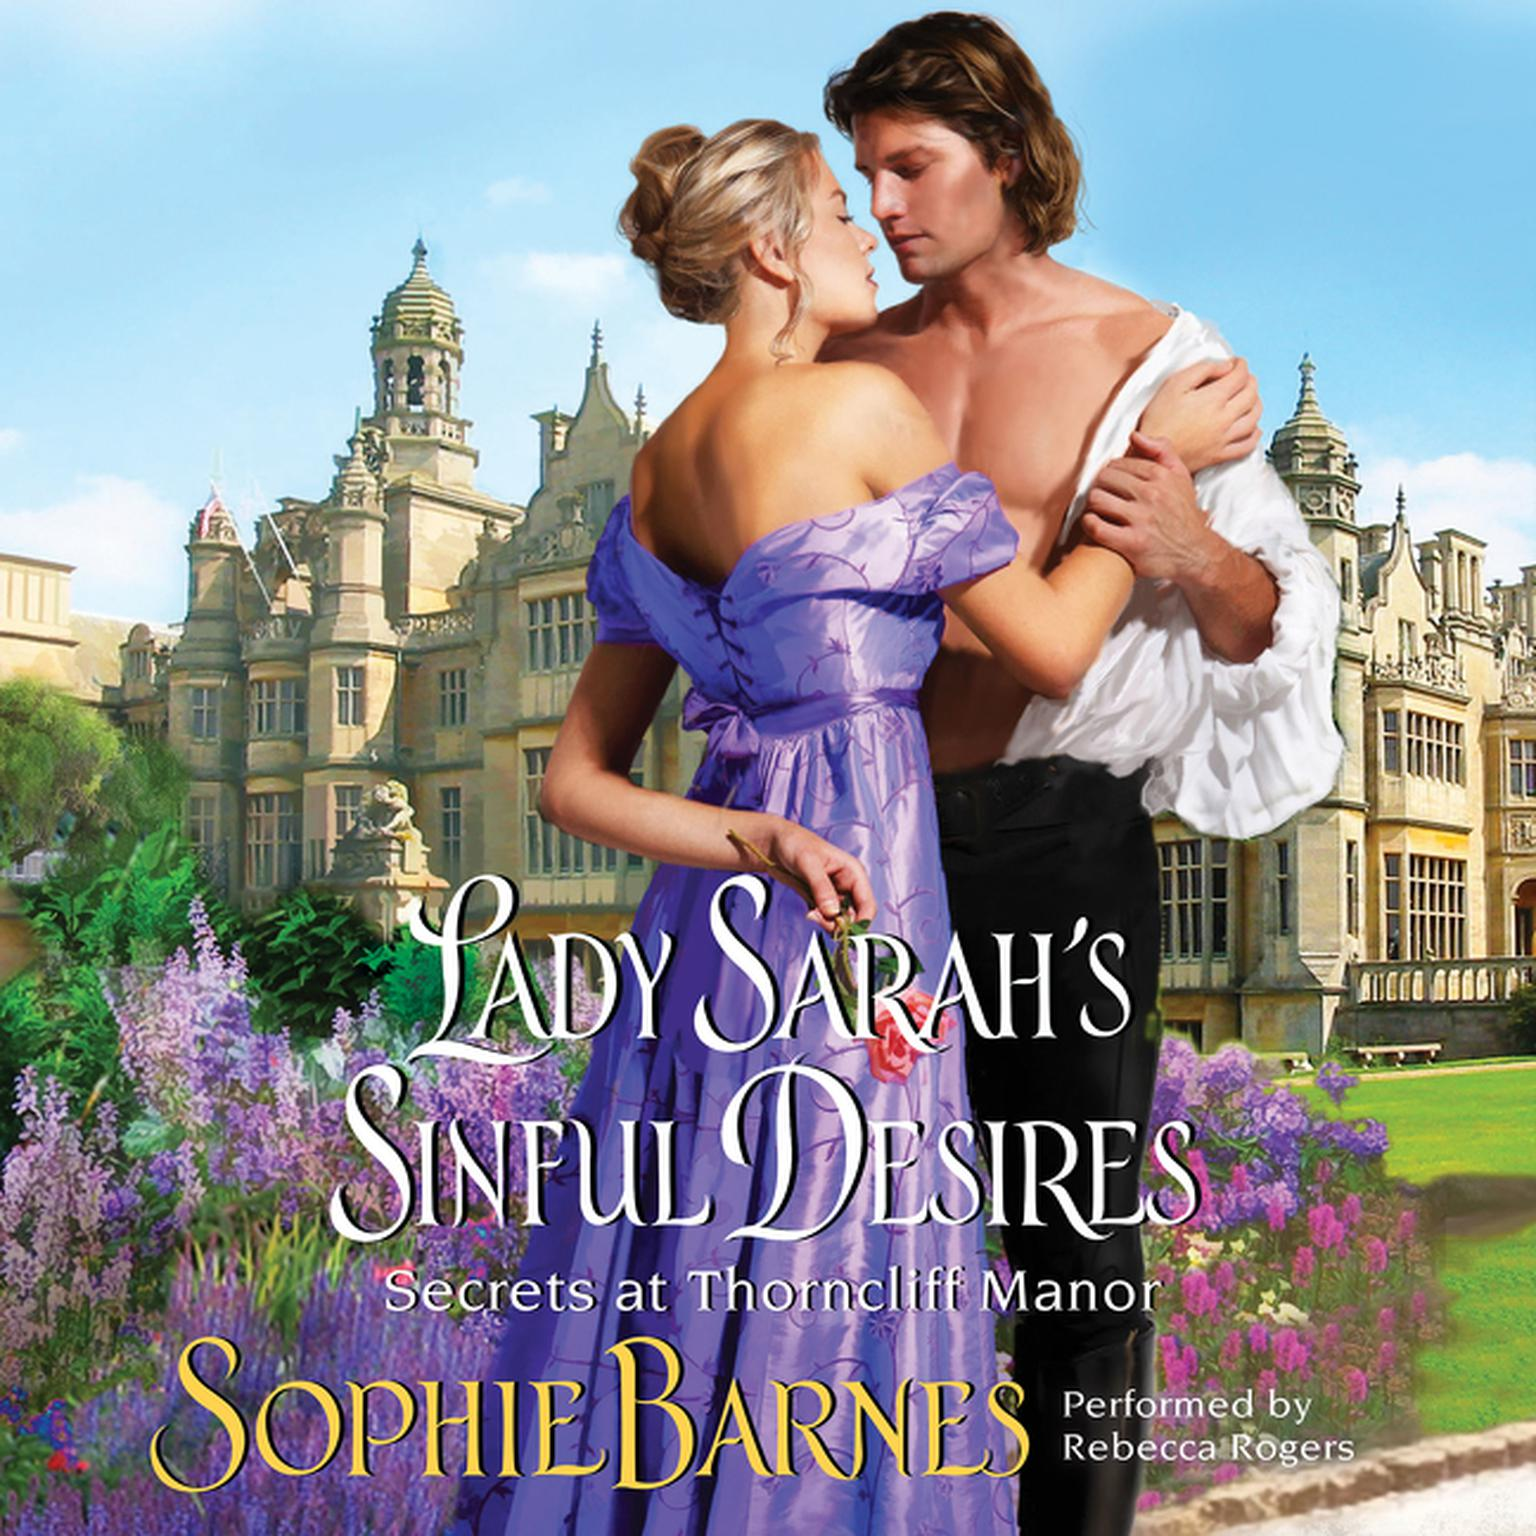 Printable Lady Sarah's Sinful Desires: Secrets at Thorncliff Manor Audiobook Cover Art